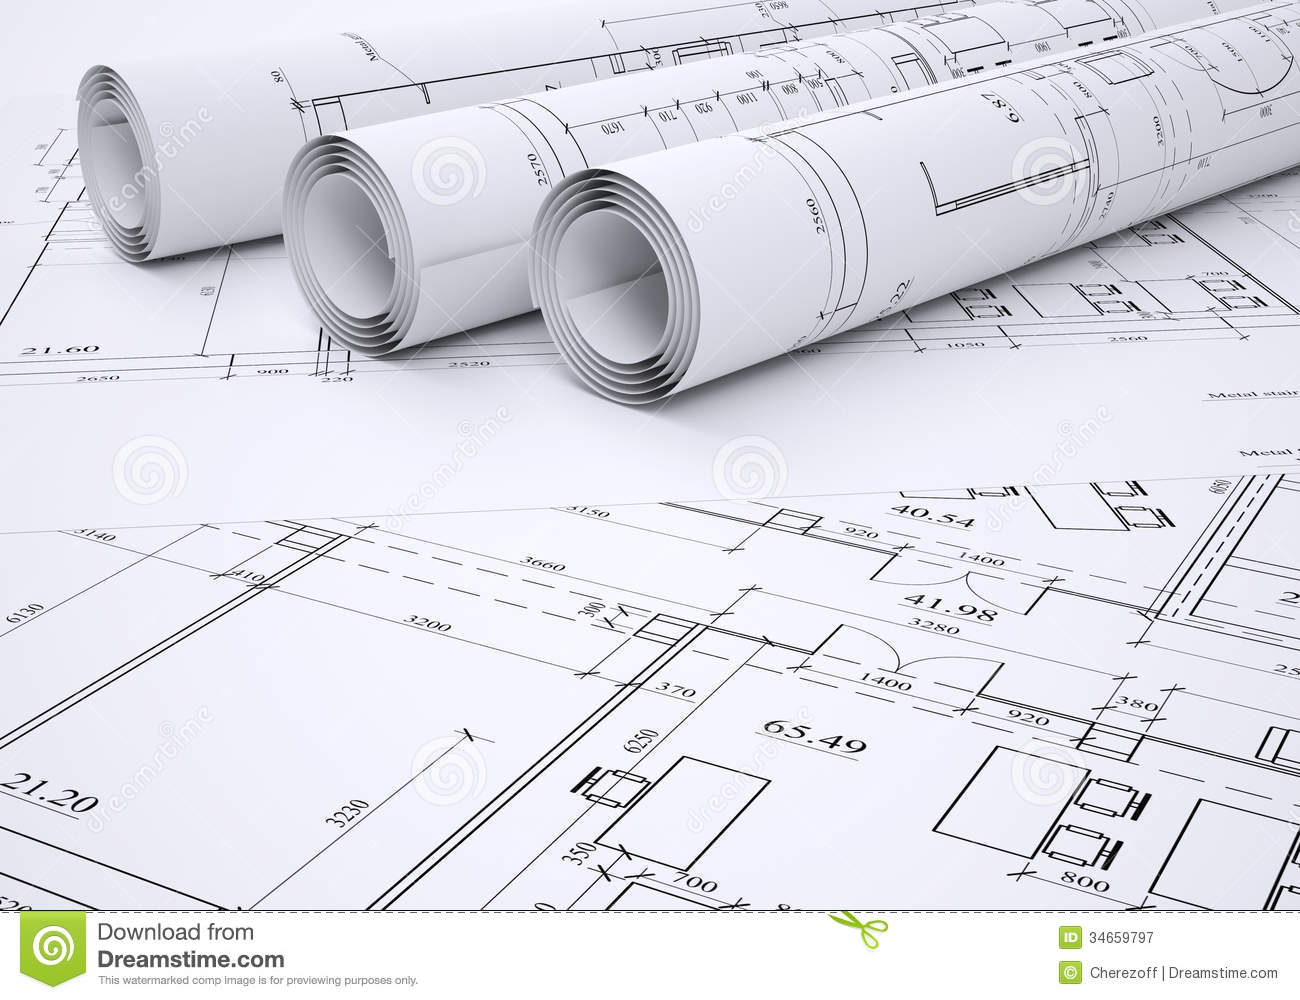 Architectural drawing rich image and wallpaper for Free online architecture design